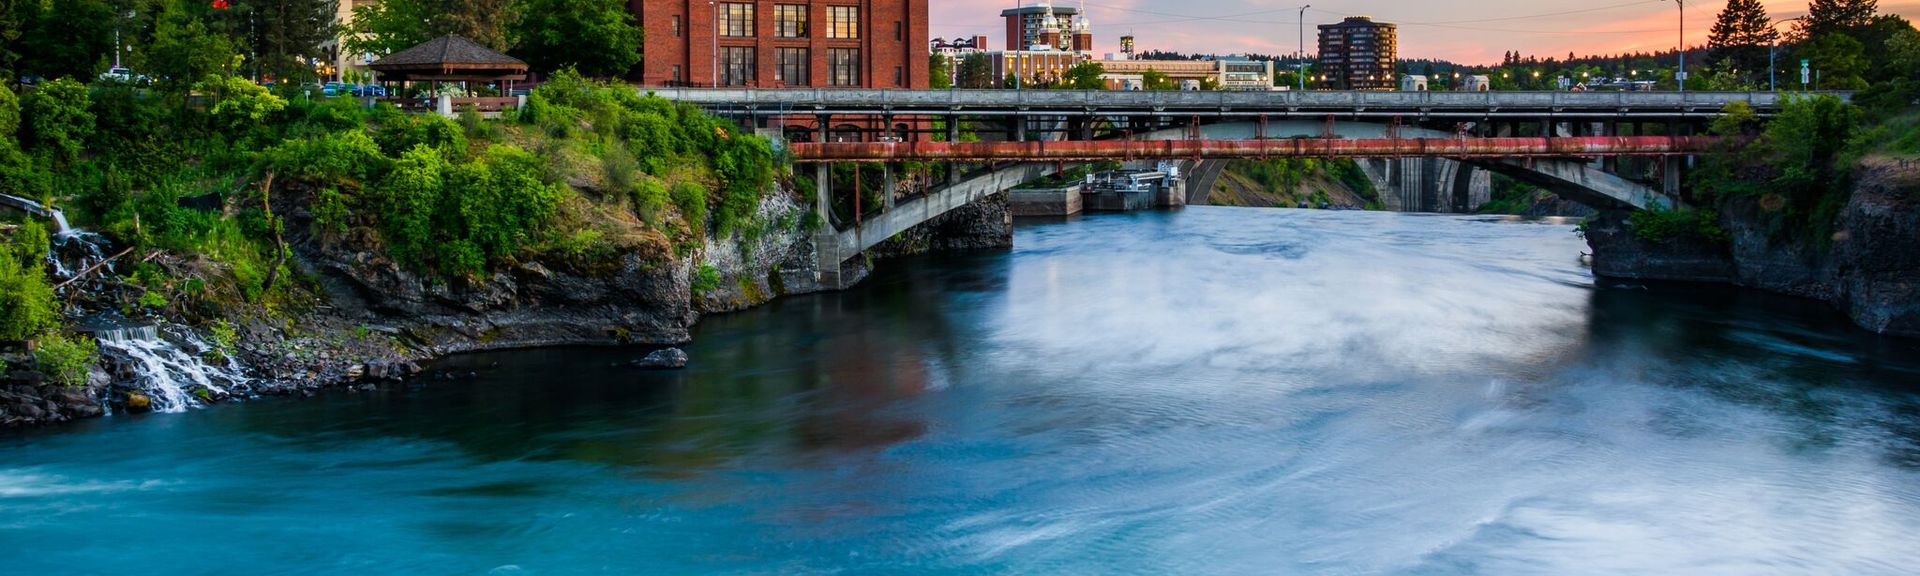 Spokane, Washington, United States of America